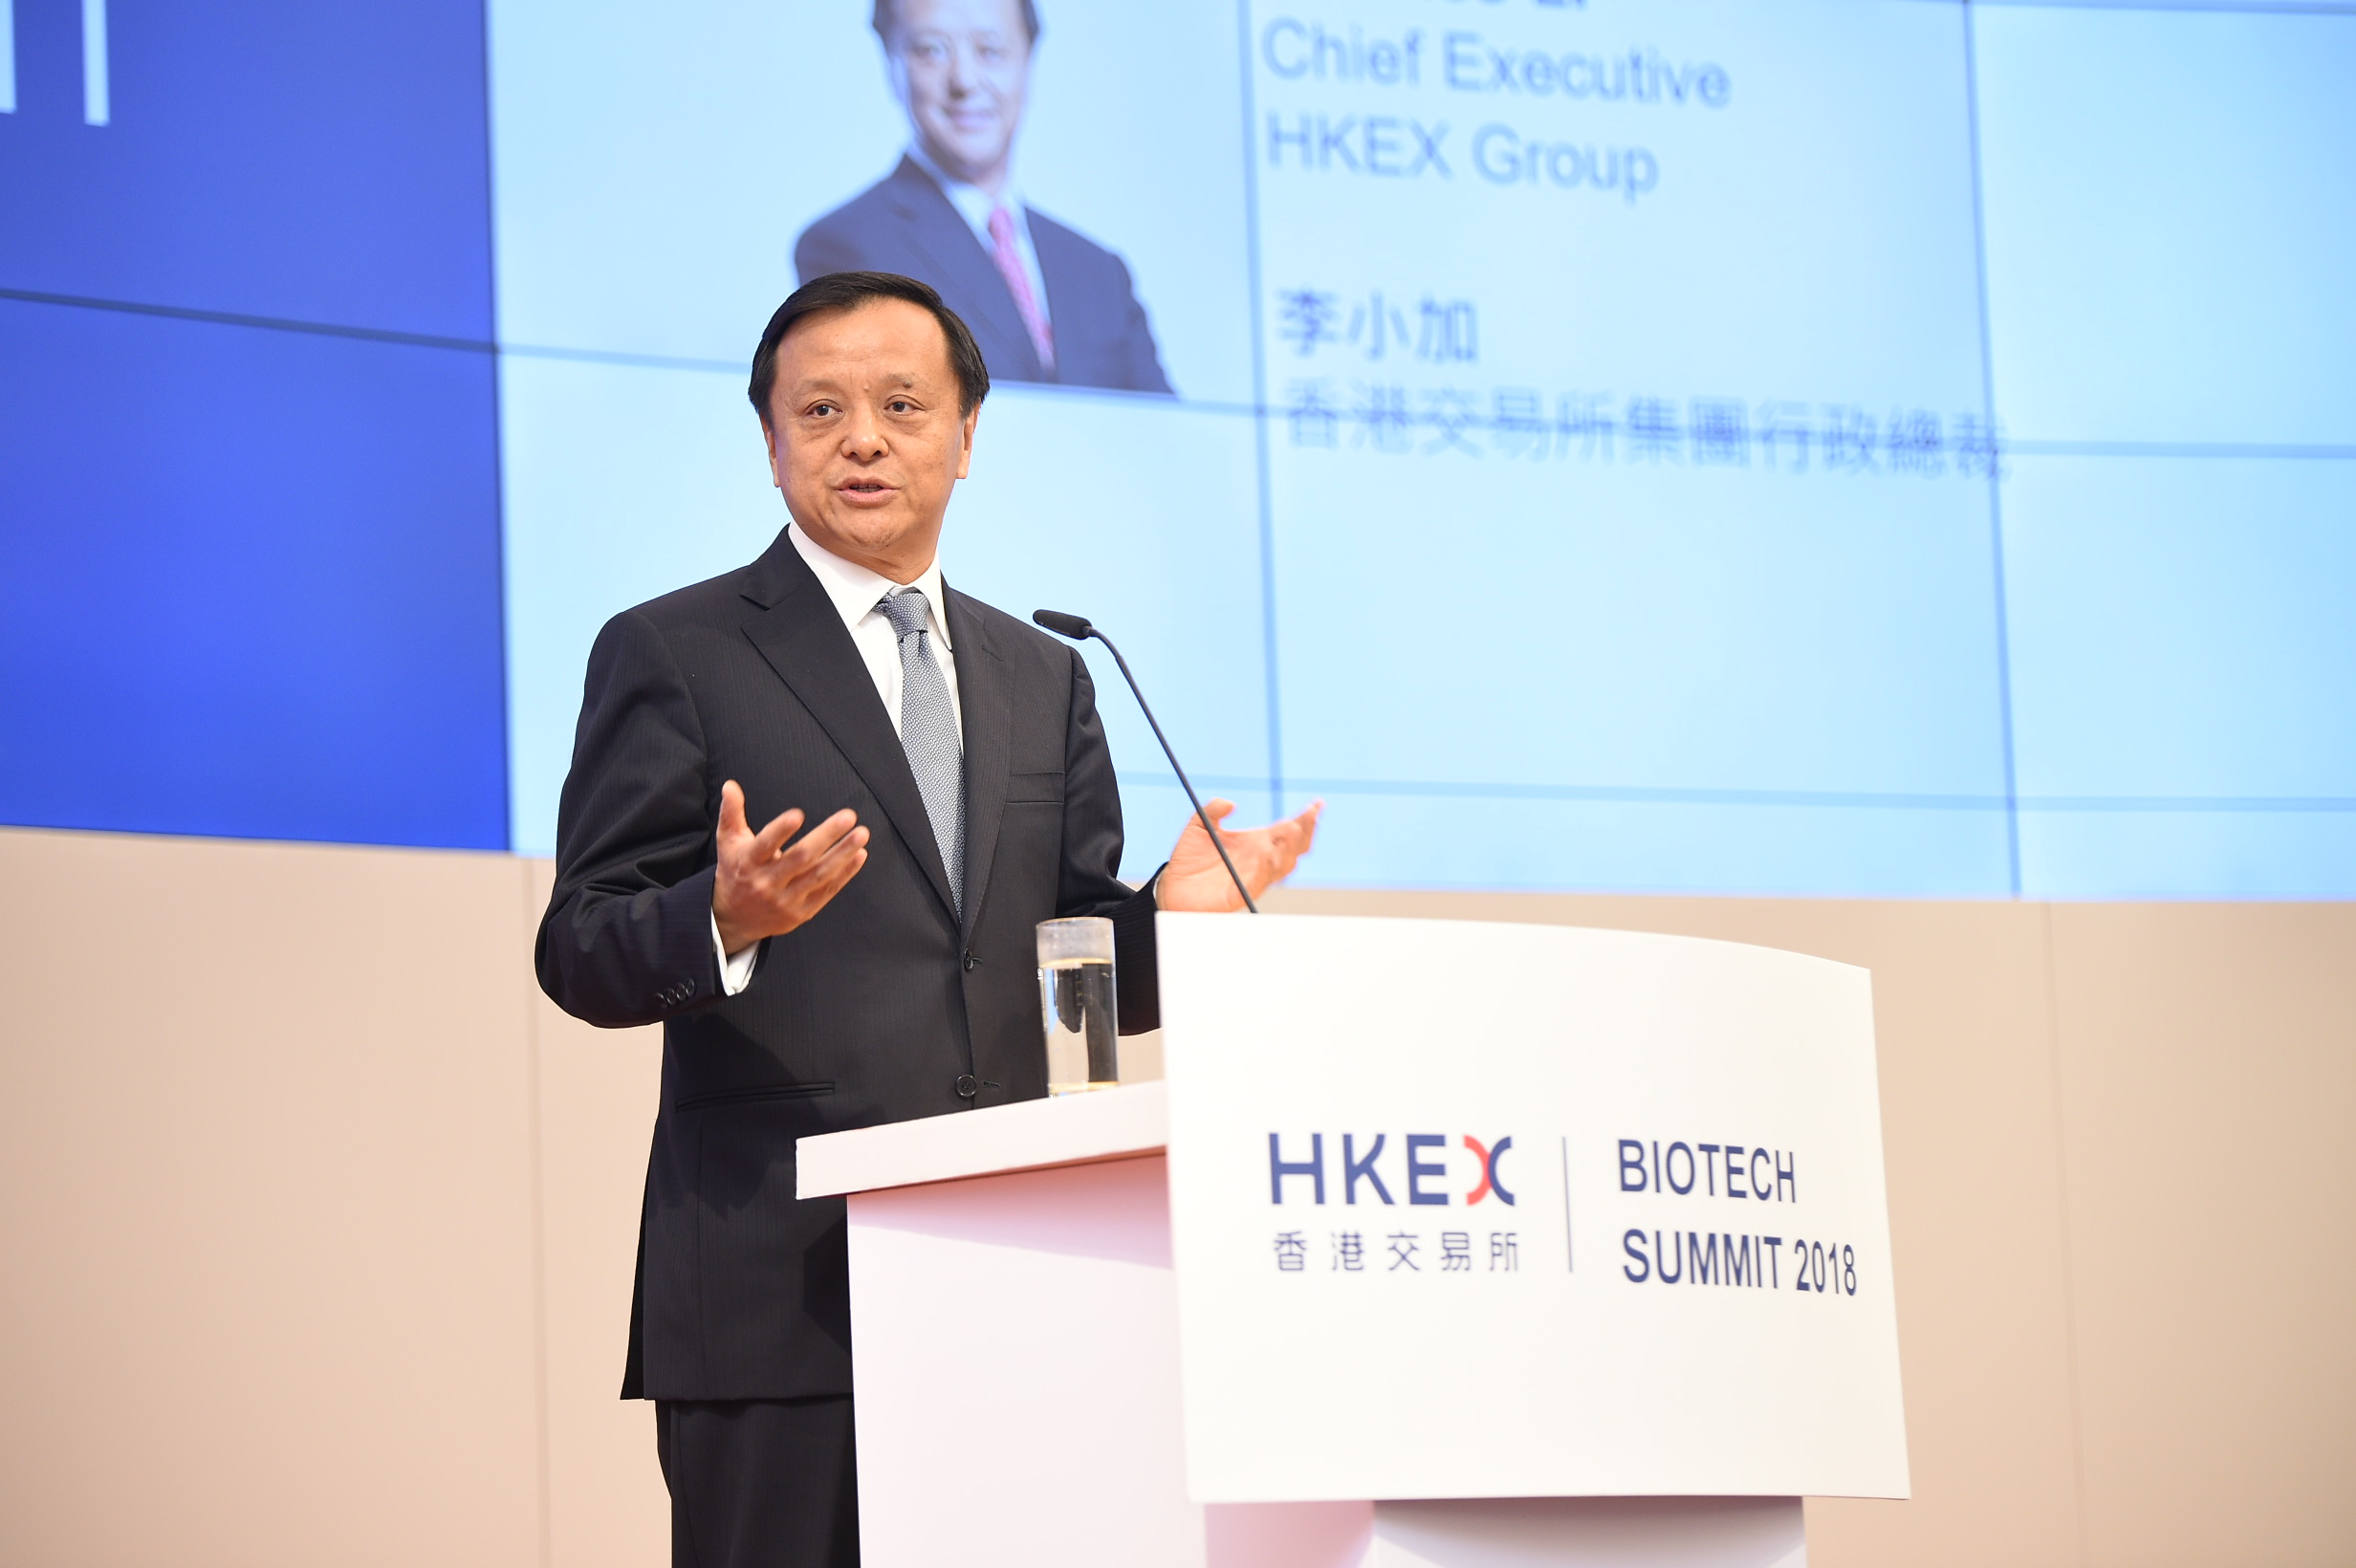 In his keynote speech at the HKEX Biotech Summit 2018, HKEX Chief Executive Charles Li said that capital markets should be tapped in order to truly leverage on the biotech sector's developments.